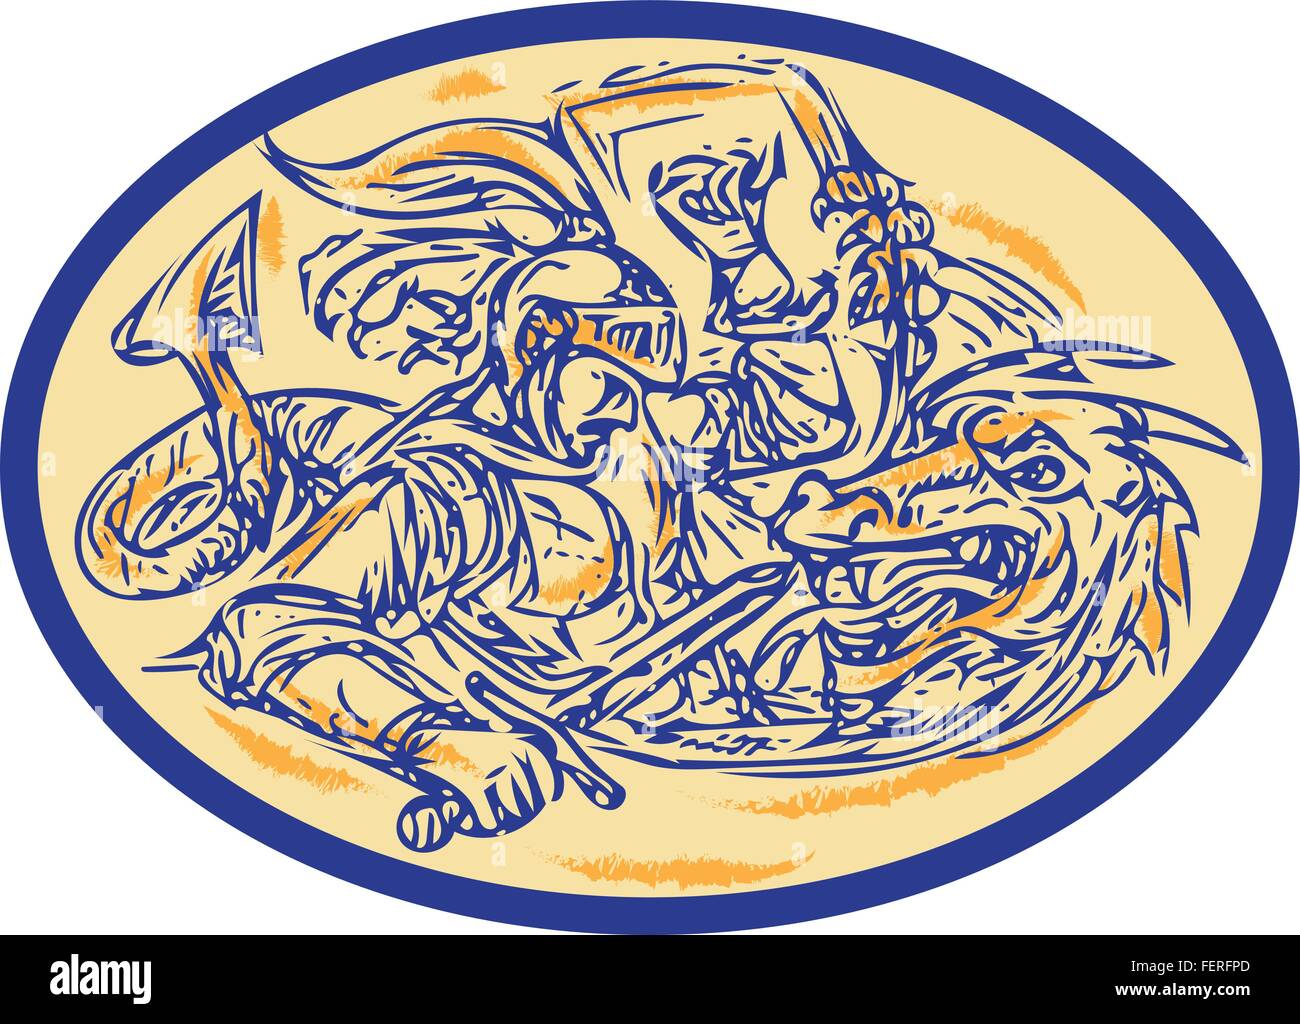 Drawing sketch style illustration of St George fighting dragon set inside oval shape. - Stock Vector